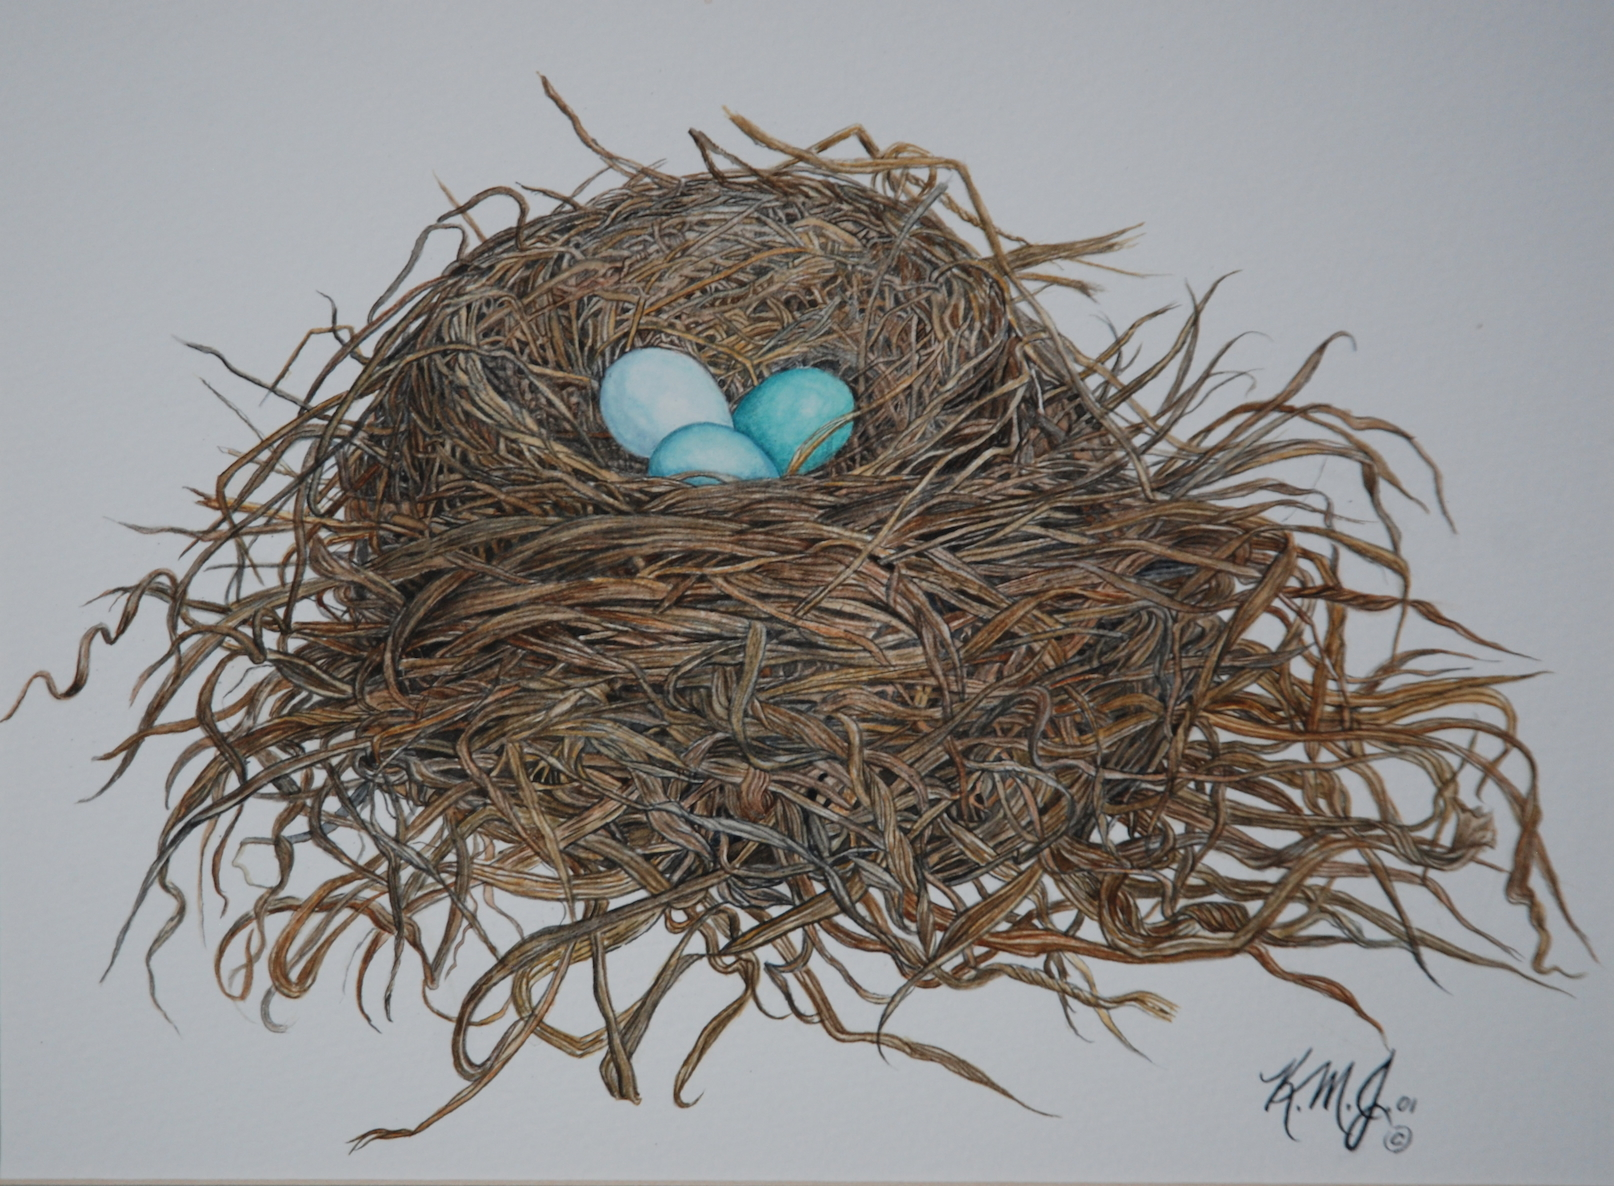 Robin's Nest, K Johnston